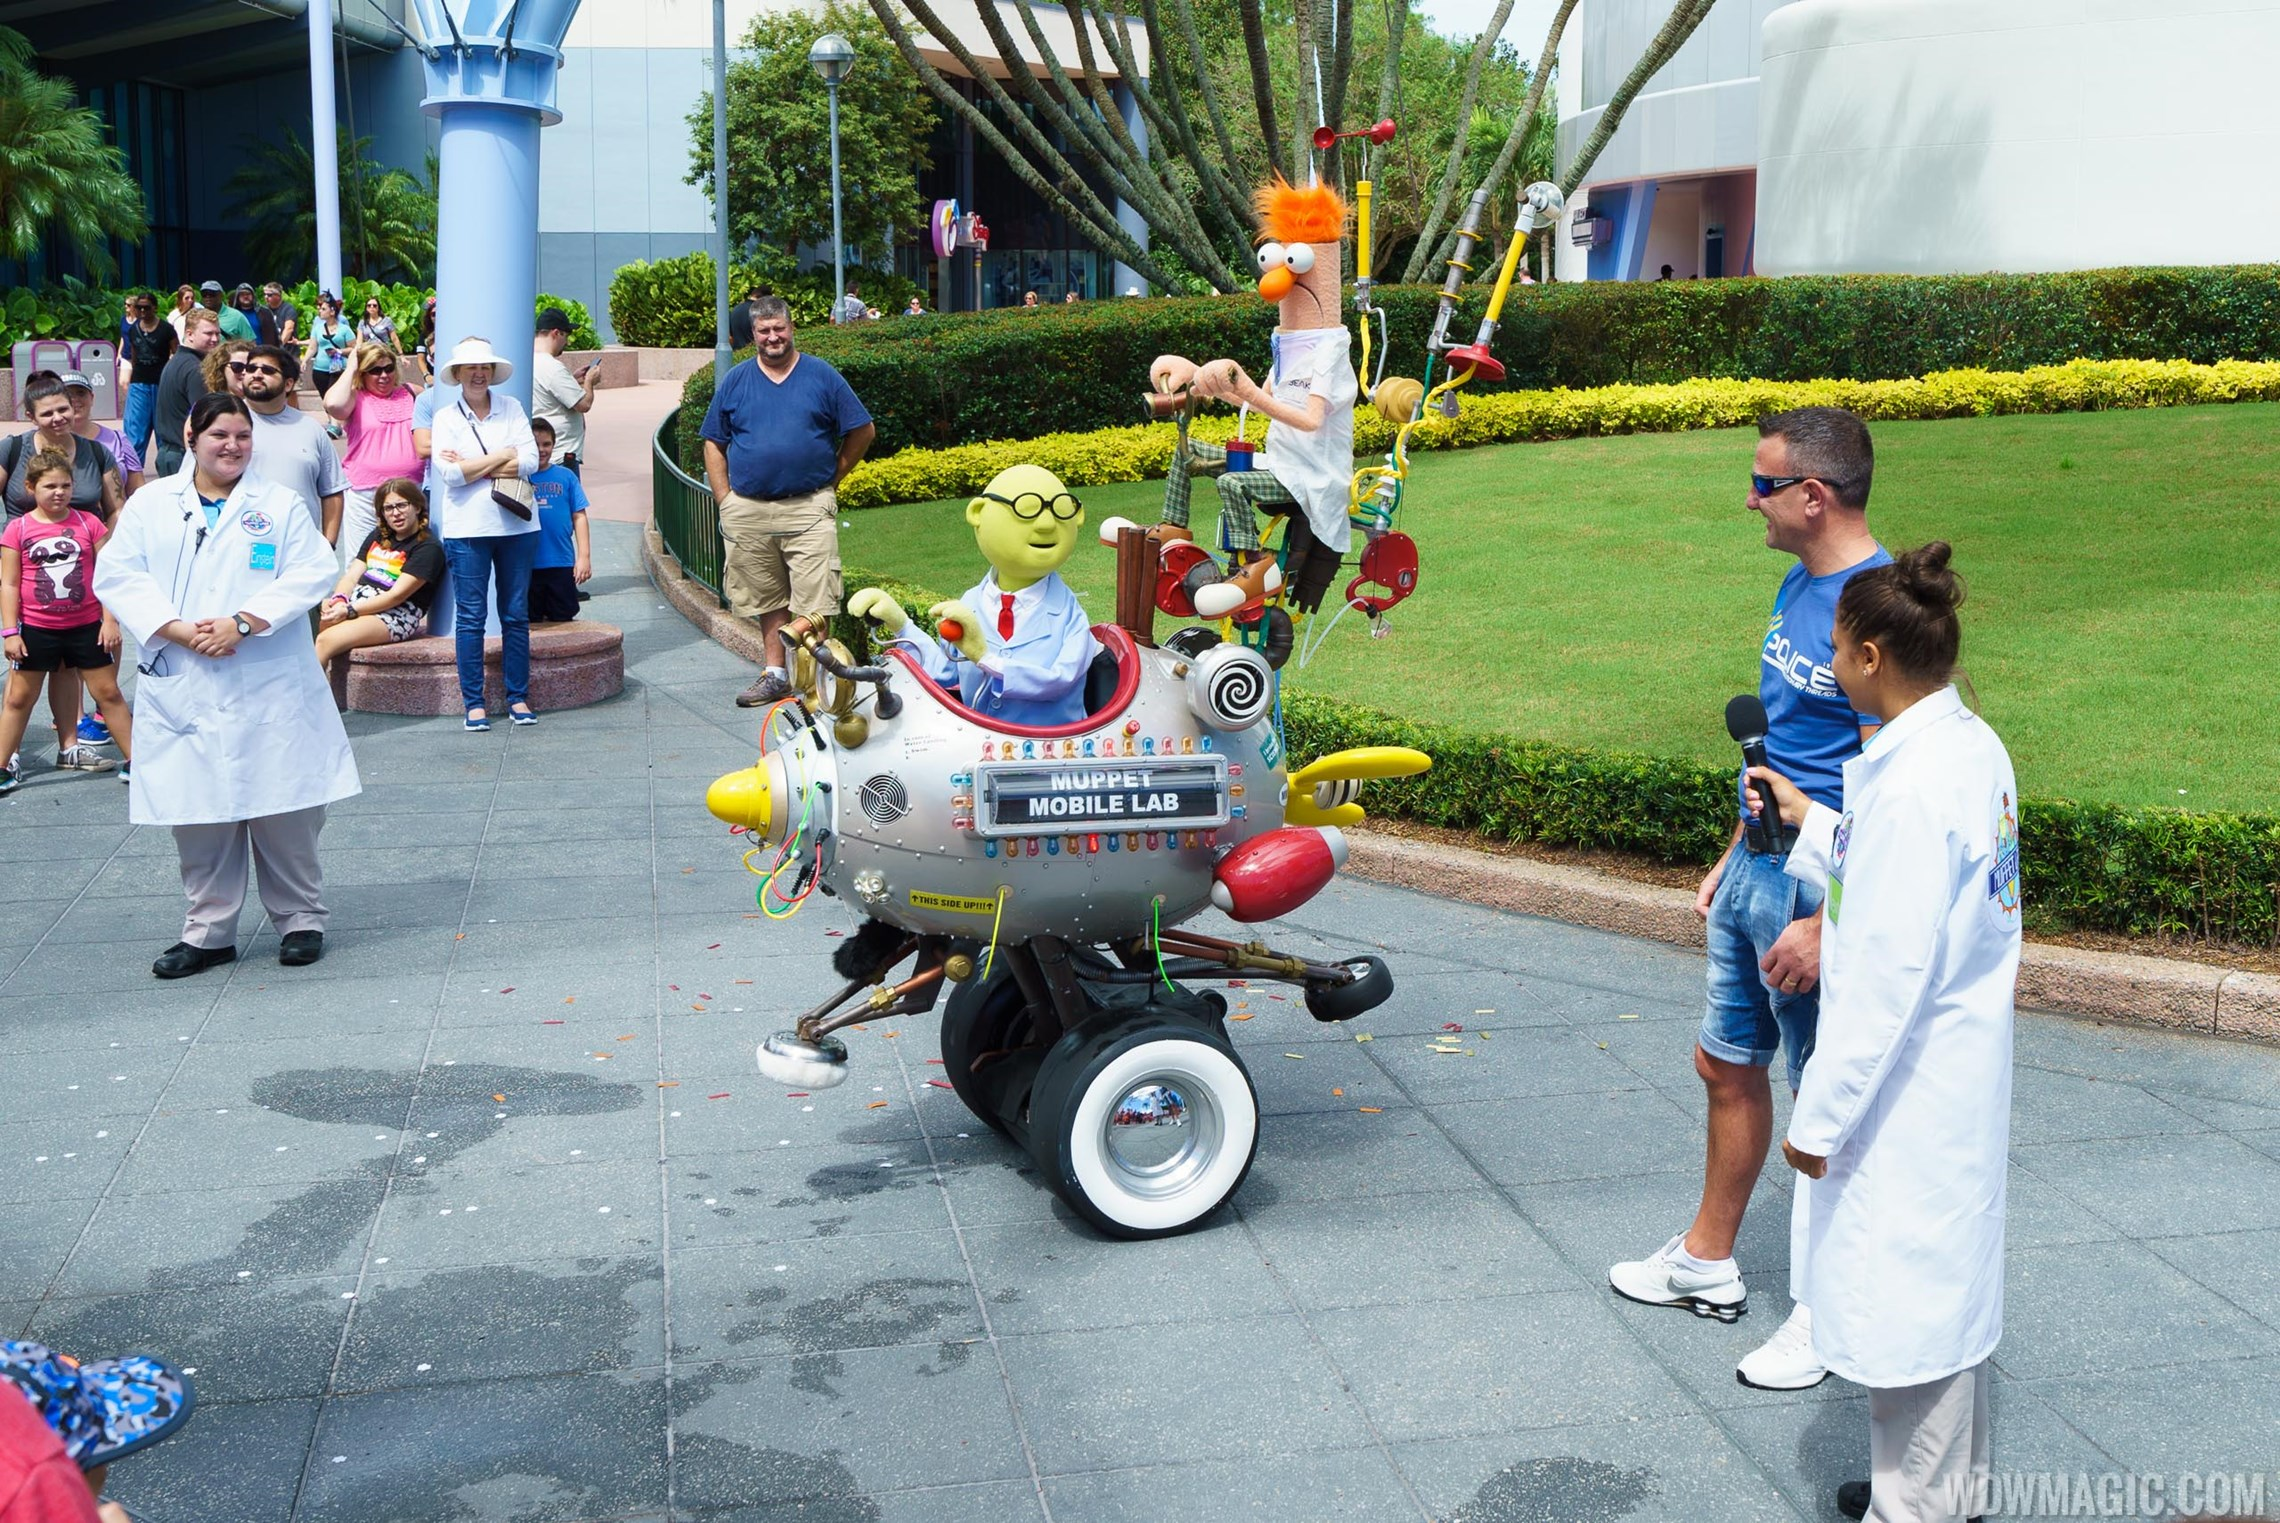 Muppet Mobile Lab overview